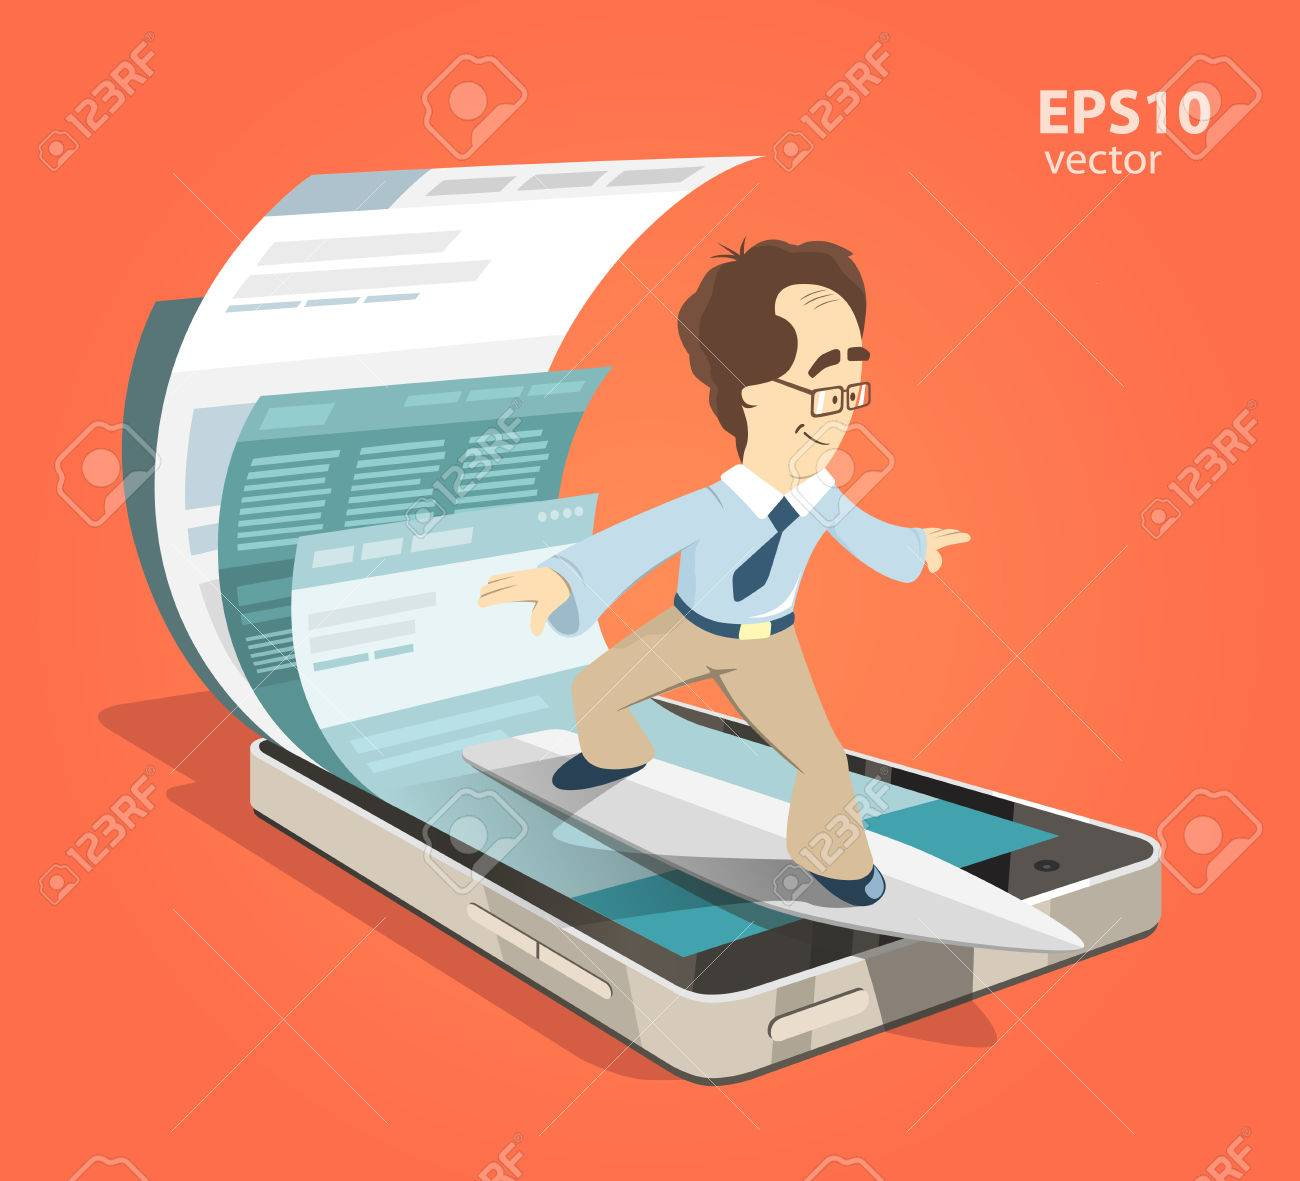 Fast speed mobile internet surfing. Man businessman on surfboard. Search information using smartphone. Color vector illustration creative concept. - 50568934